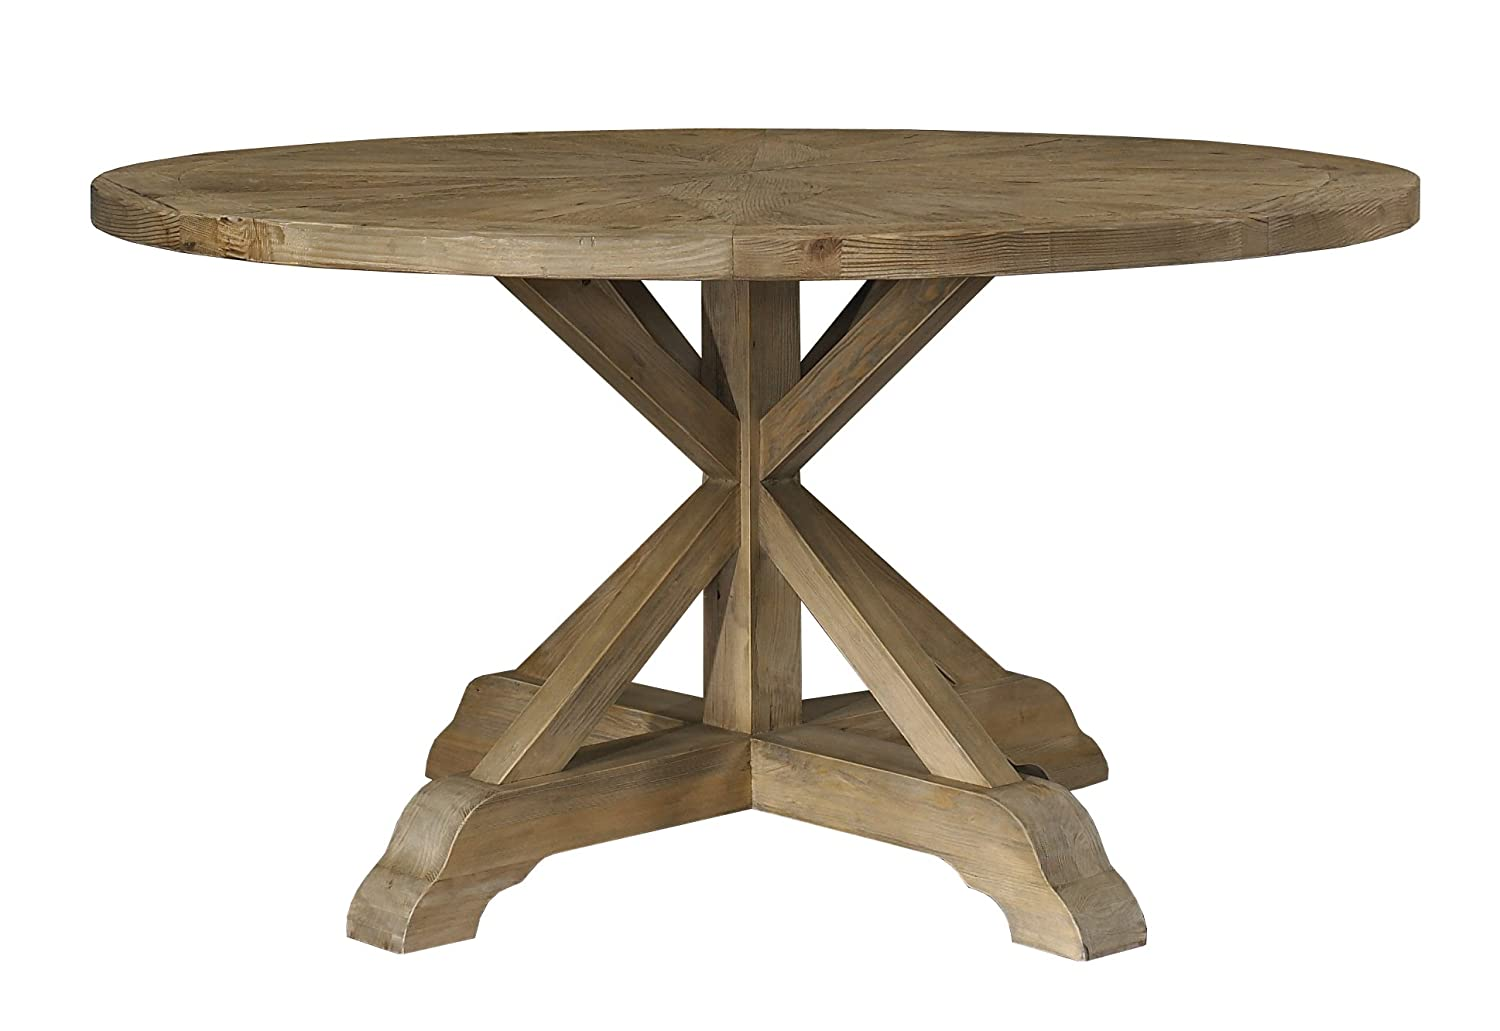 amazoncom padmas plantataion salvaged wood dining table 60 inch round tables - Dining Table Round Wood